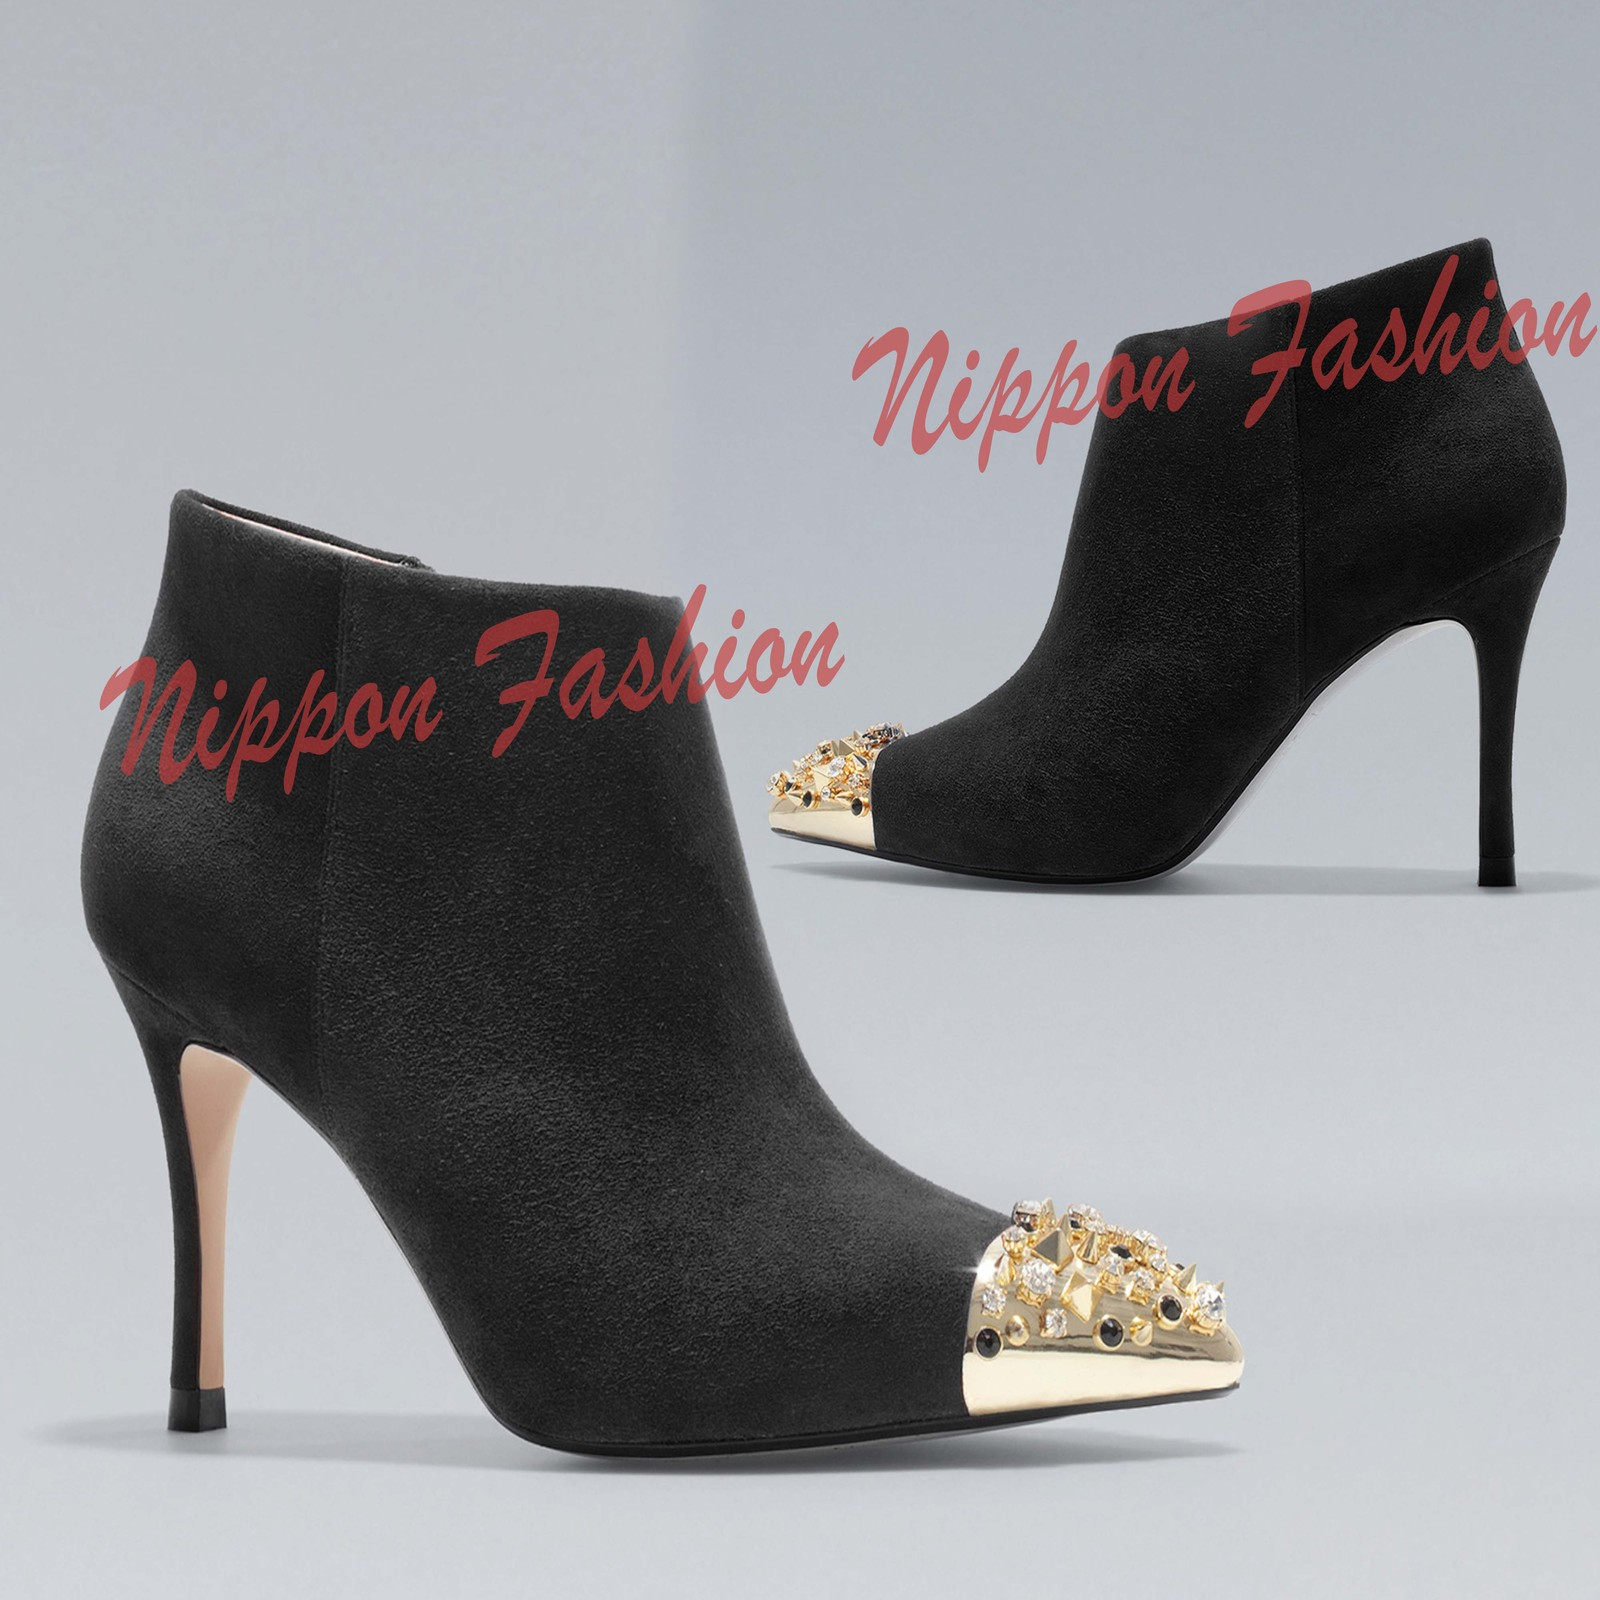 8a3818f4735 1. 1. NEW ZARA Black High Heels Ankle Boots Stud Spikes Gold Cap Toe Suede  Metal Shoes · NEW ZARA Black ...